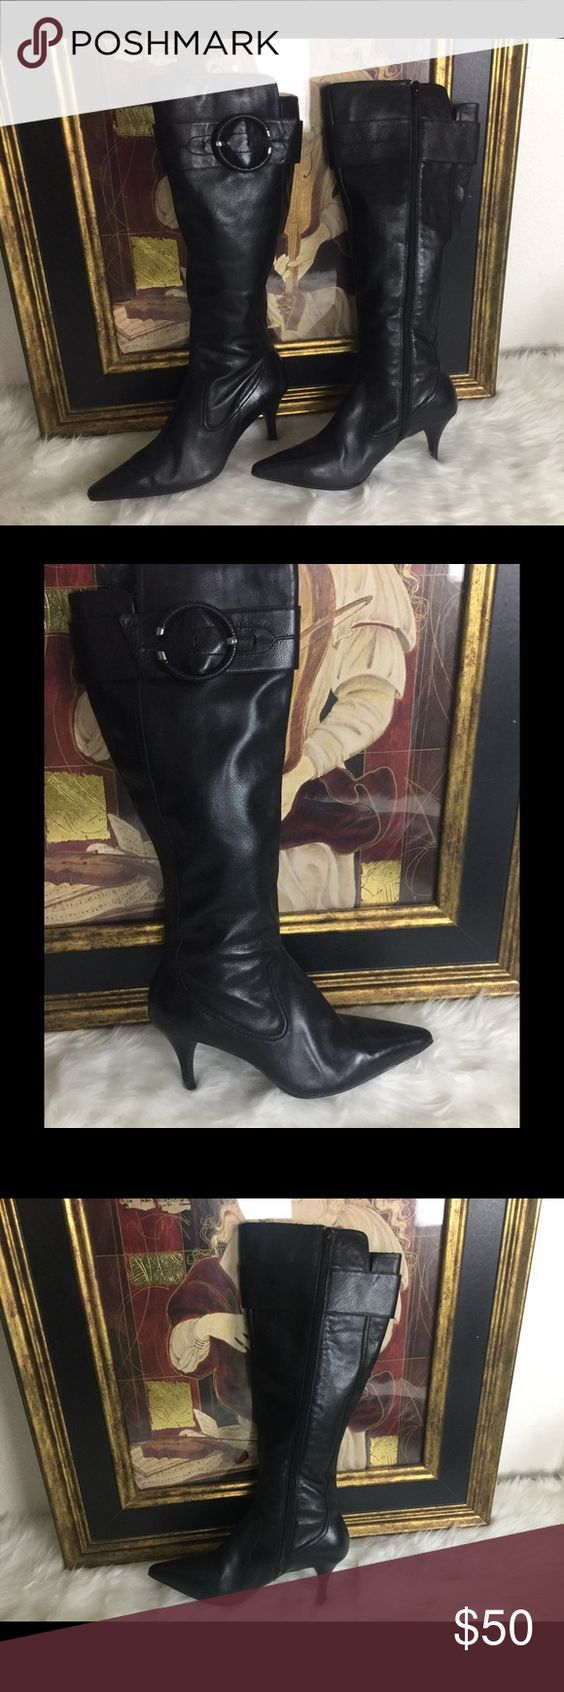 "LISTING. Joan & David Leather Boots. Sz 7 Check out these great Joan & David boots.  So cute.  Sz 7. Heel height 3"".  Circumference is 6.5"". In good condition.  Love these!! Joan & David Shoes Heeled Boots"